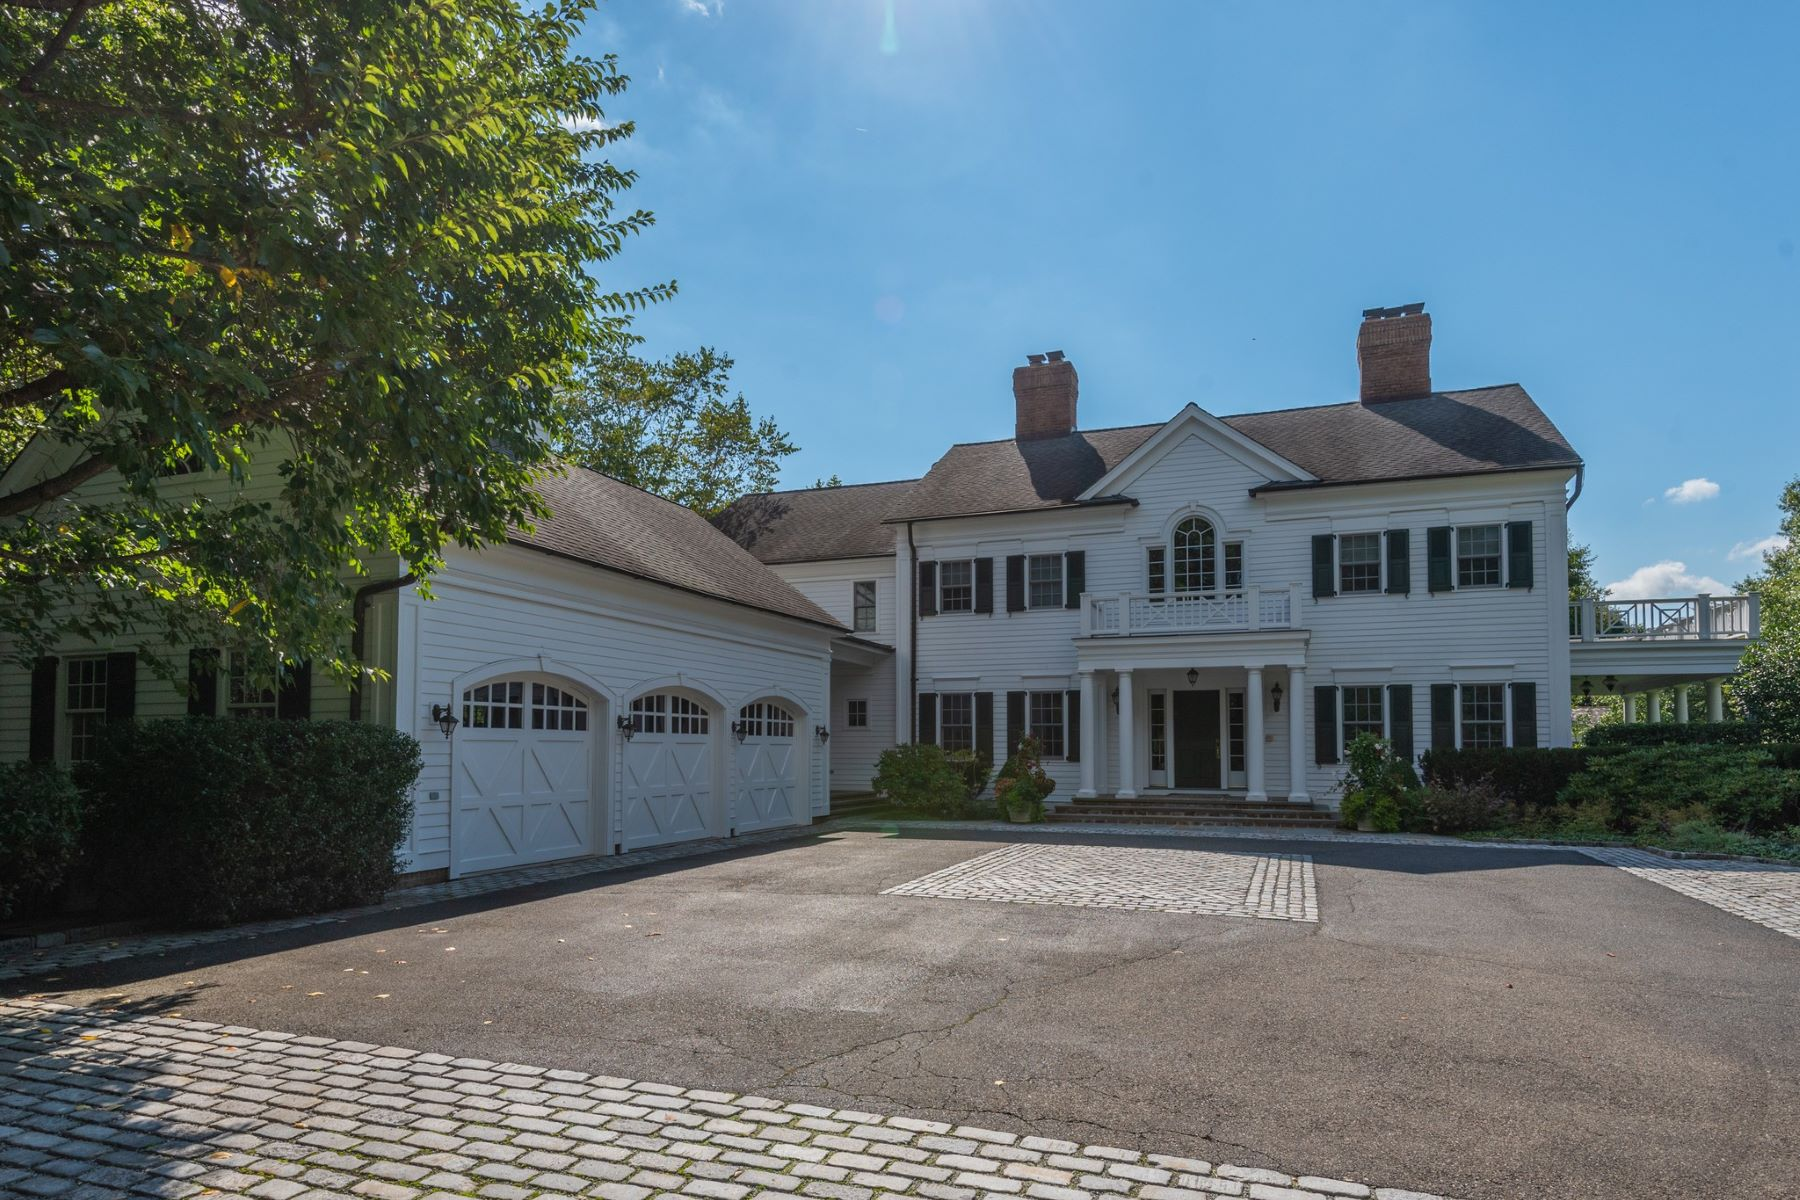 Single Family Homes for Active at Old Westbury 2 Old Wagon Ln Old Westbury, New York 11568 United States